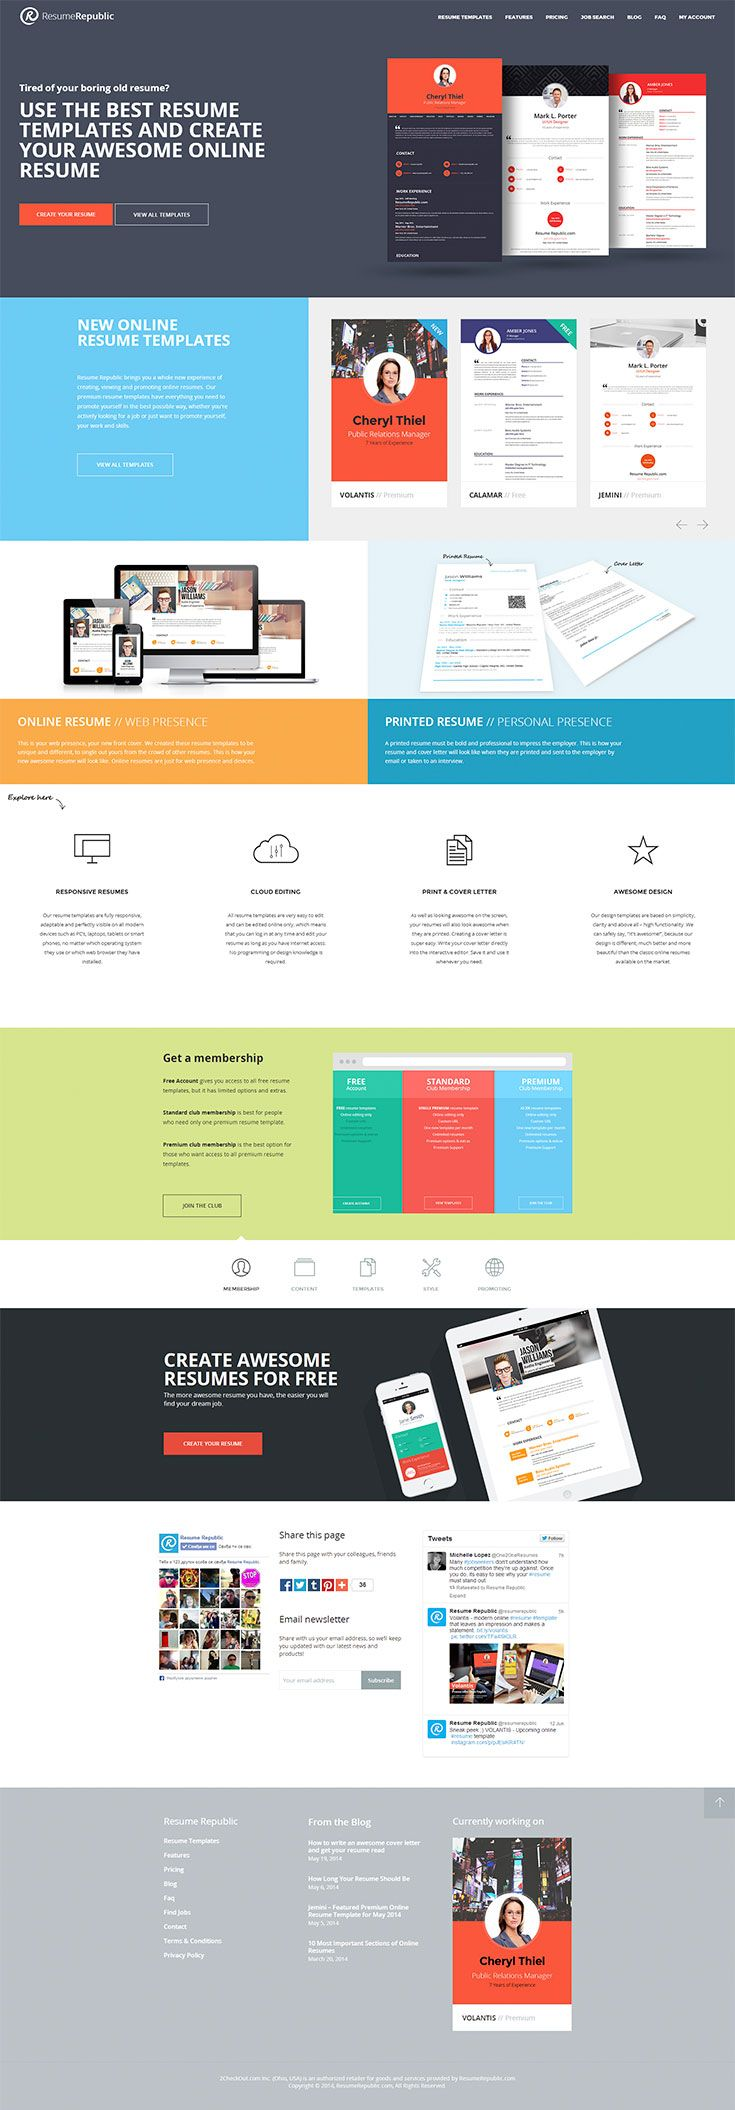 Web Resume Template Awesome Online Resume Templates  Projects  Pinterest  Online